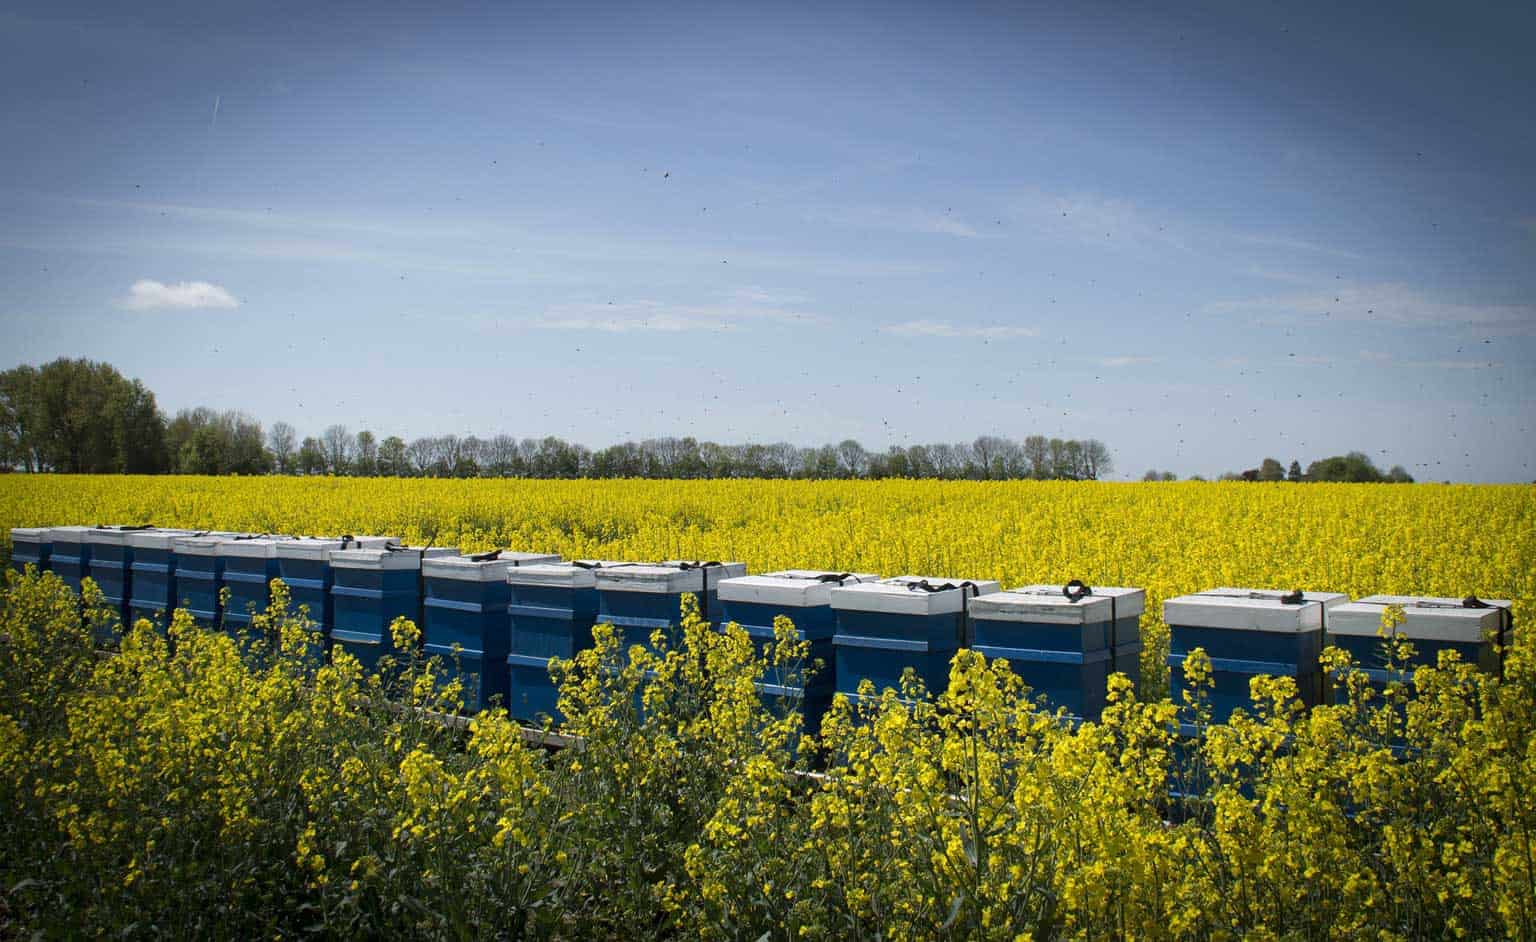 beehives in field of rapeseed